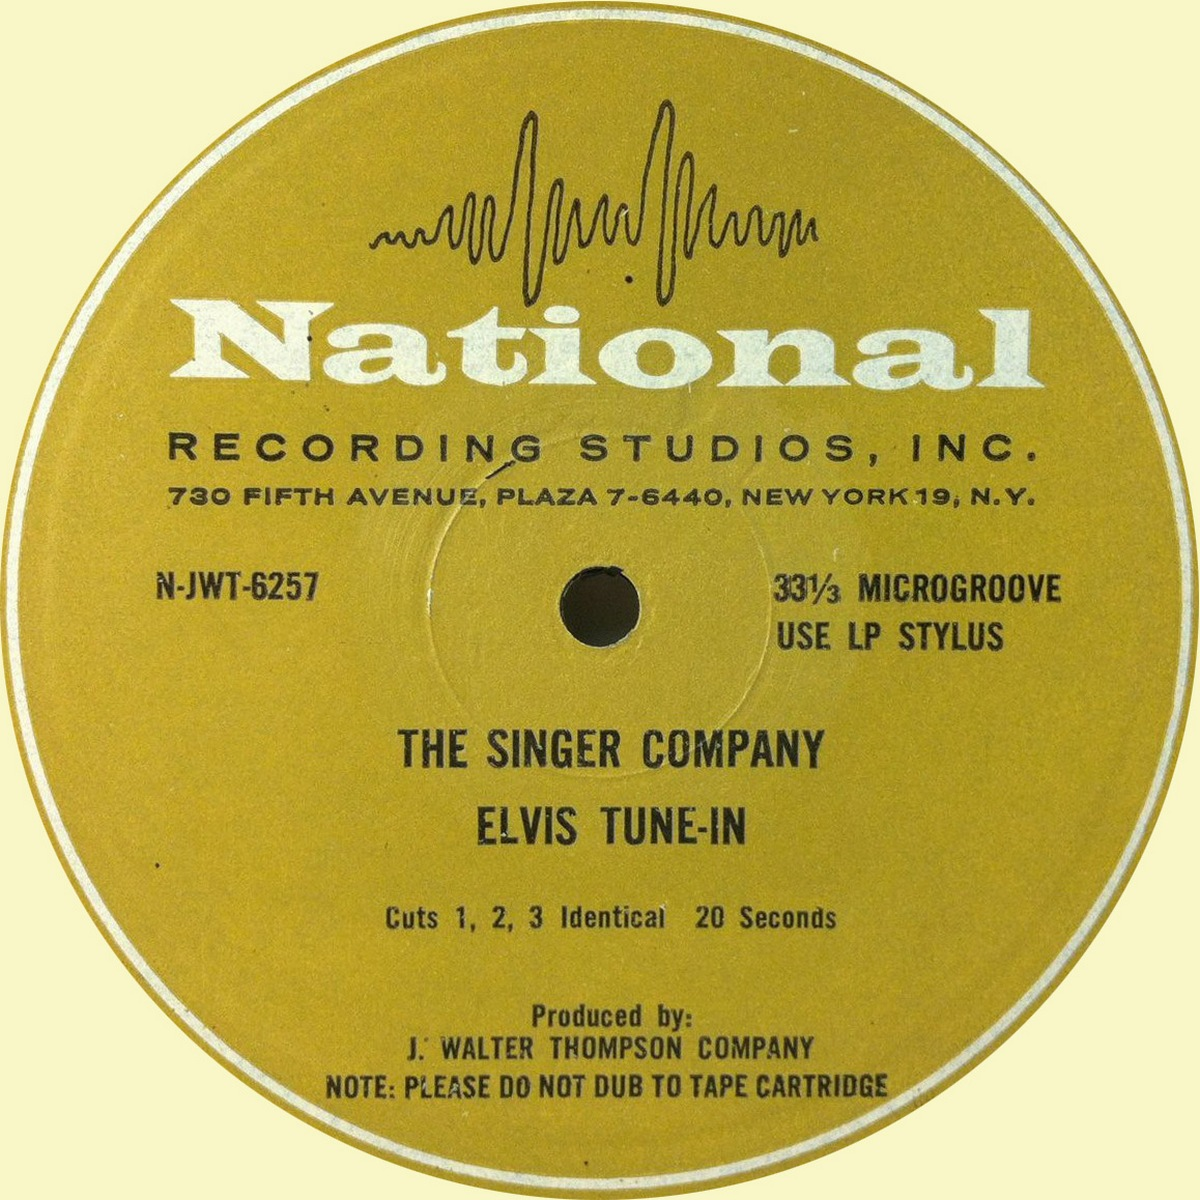 The Singer Company Elvis Tune-In